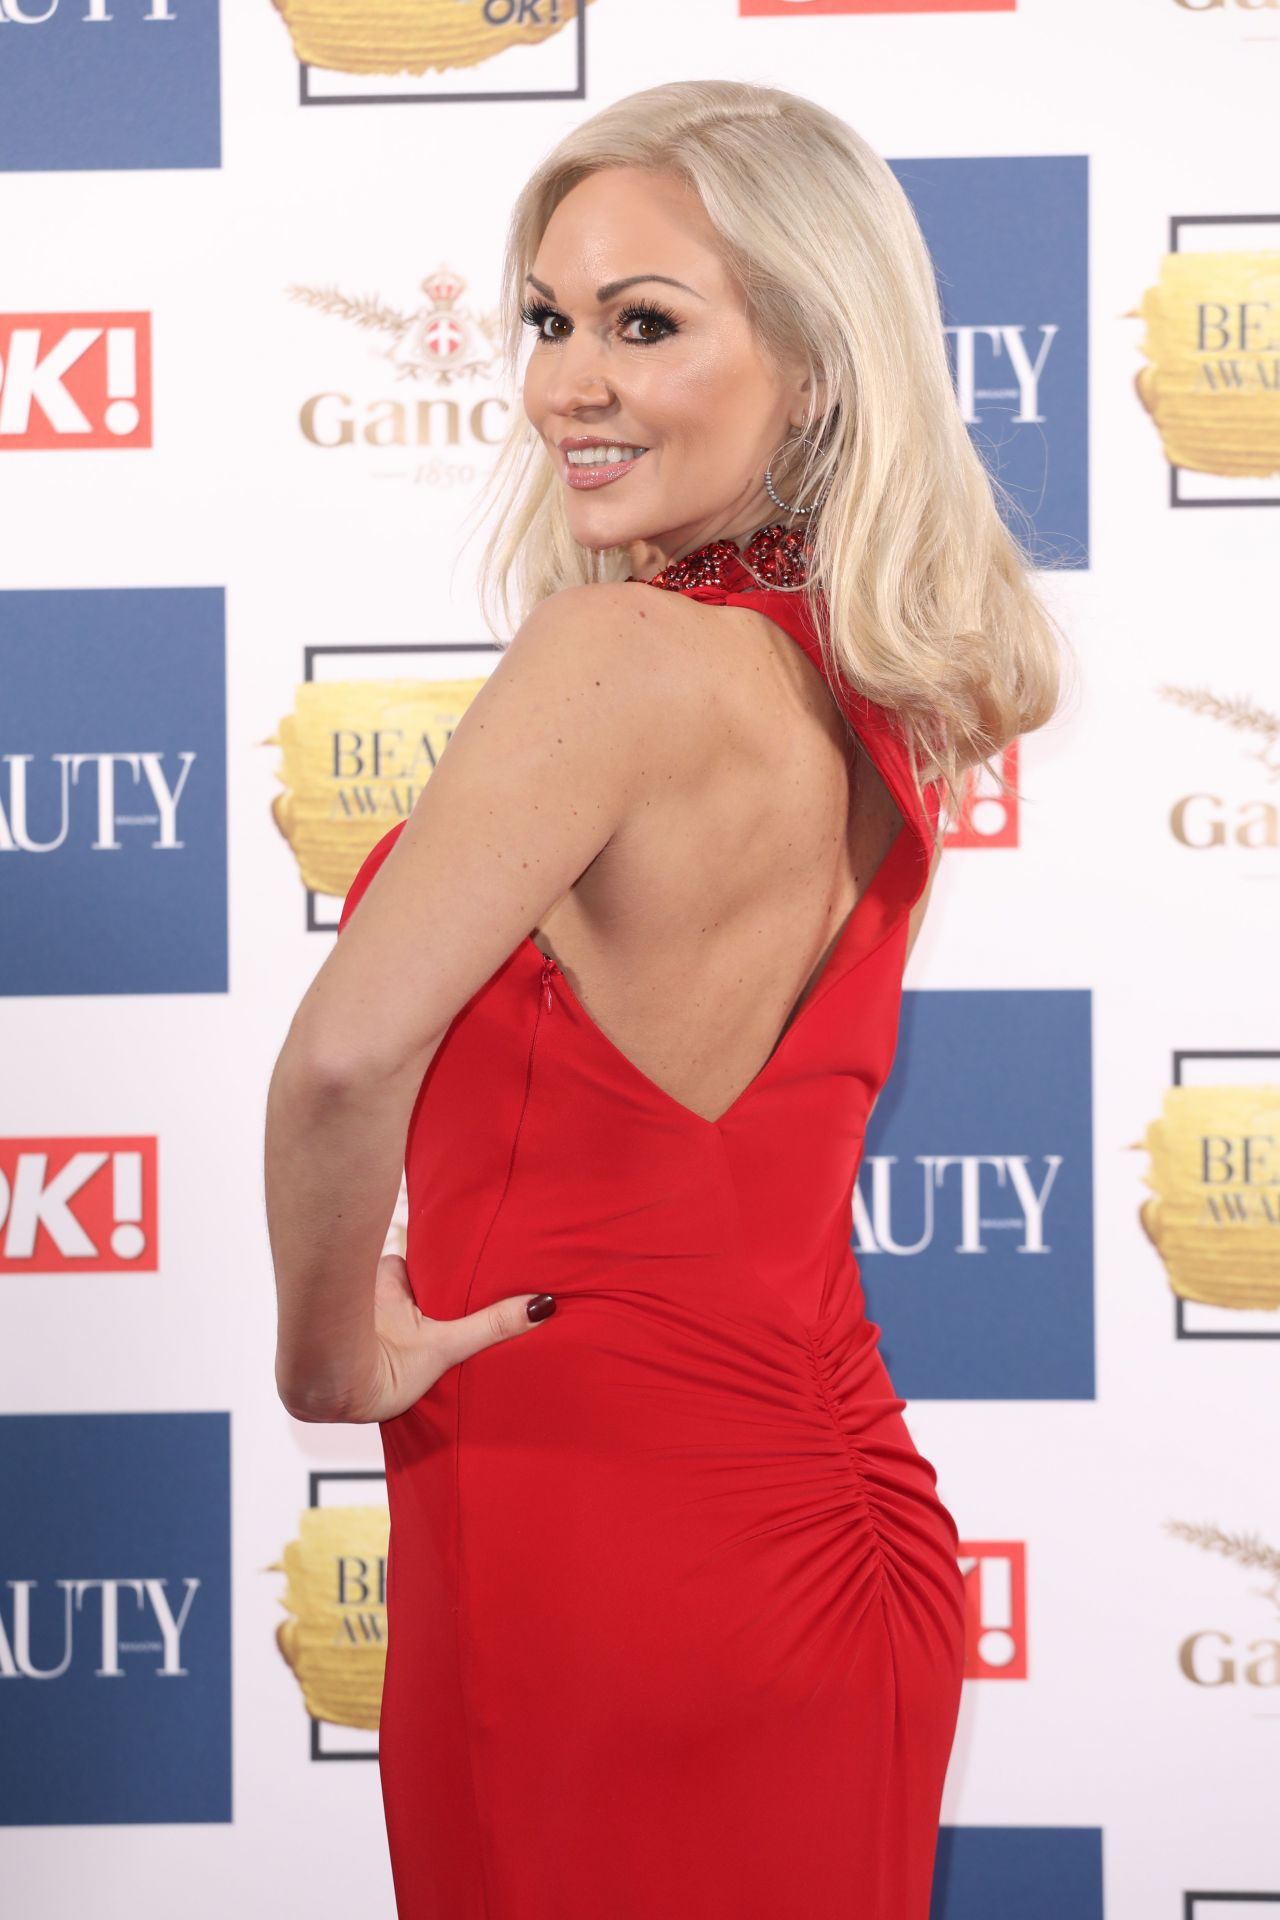 Kristina Rihanoff Beauty Awards With Ok In London